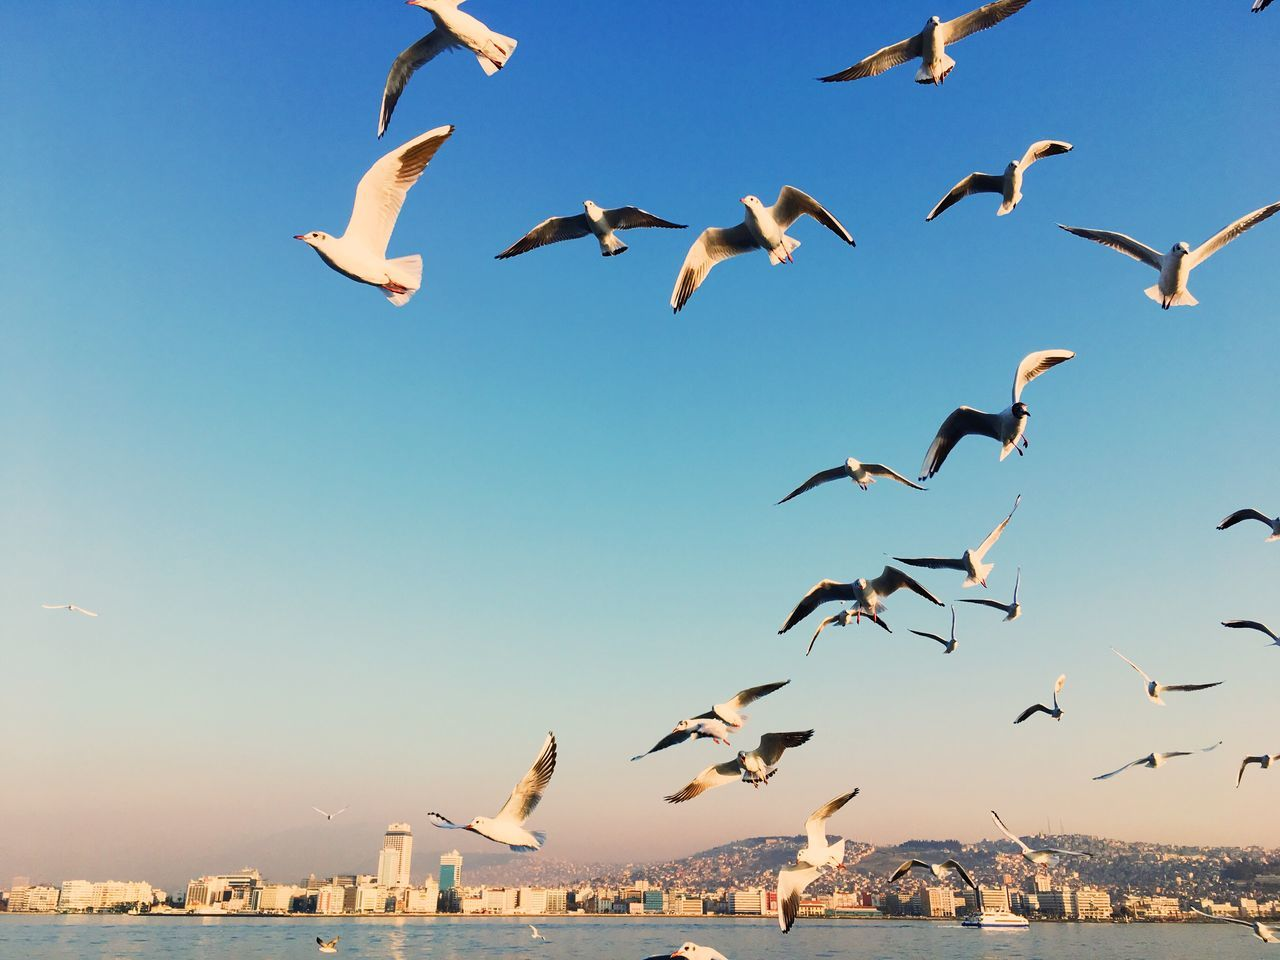 flying, bird, animals in the wild, animal themes, spread wings, mid-air, large group of animals, flock of birds, animal wildlife, nature, motion, outdoors, no people, clear sky, day, seagull, water, sky, beauty in nature